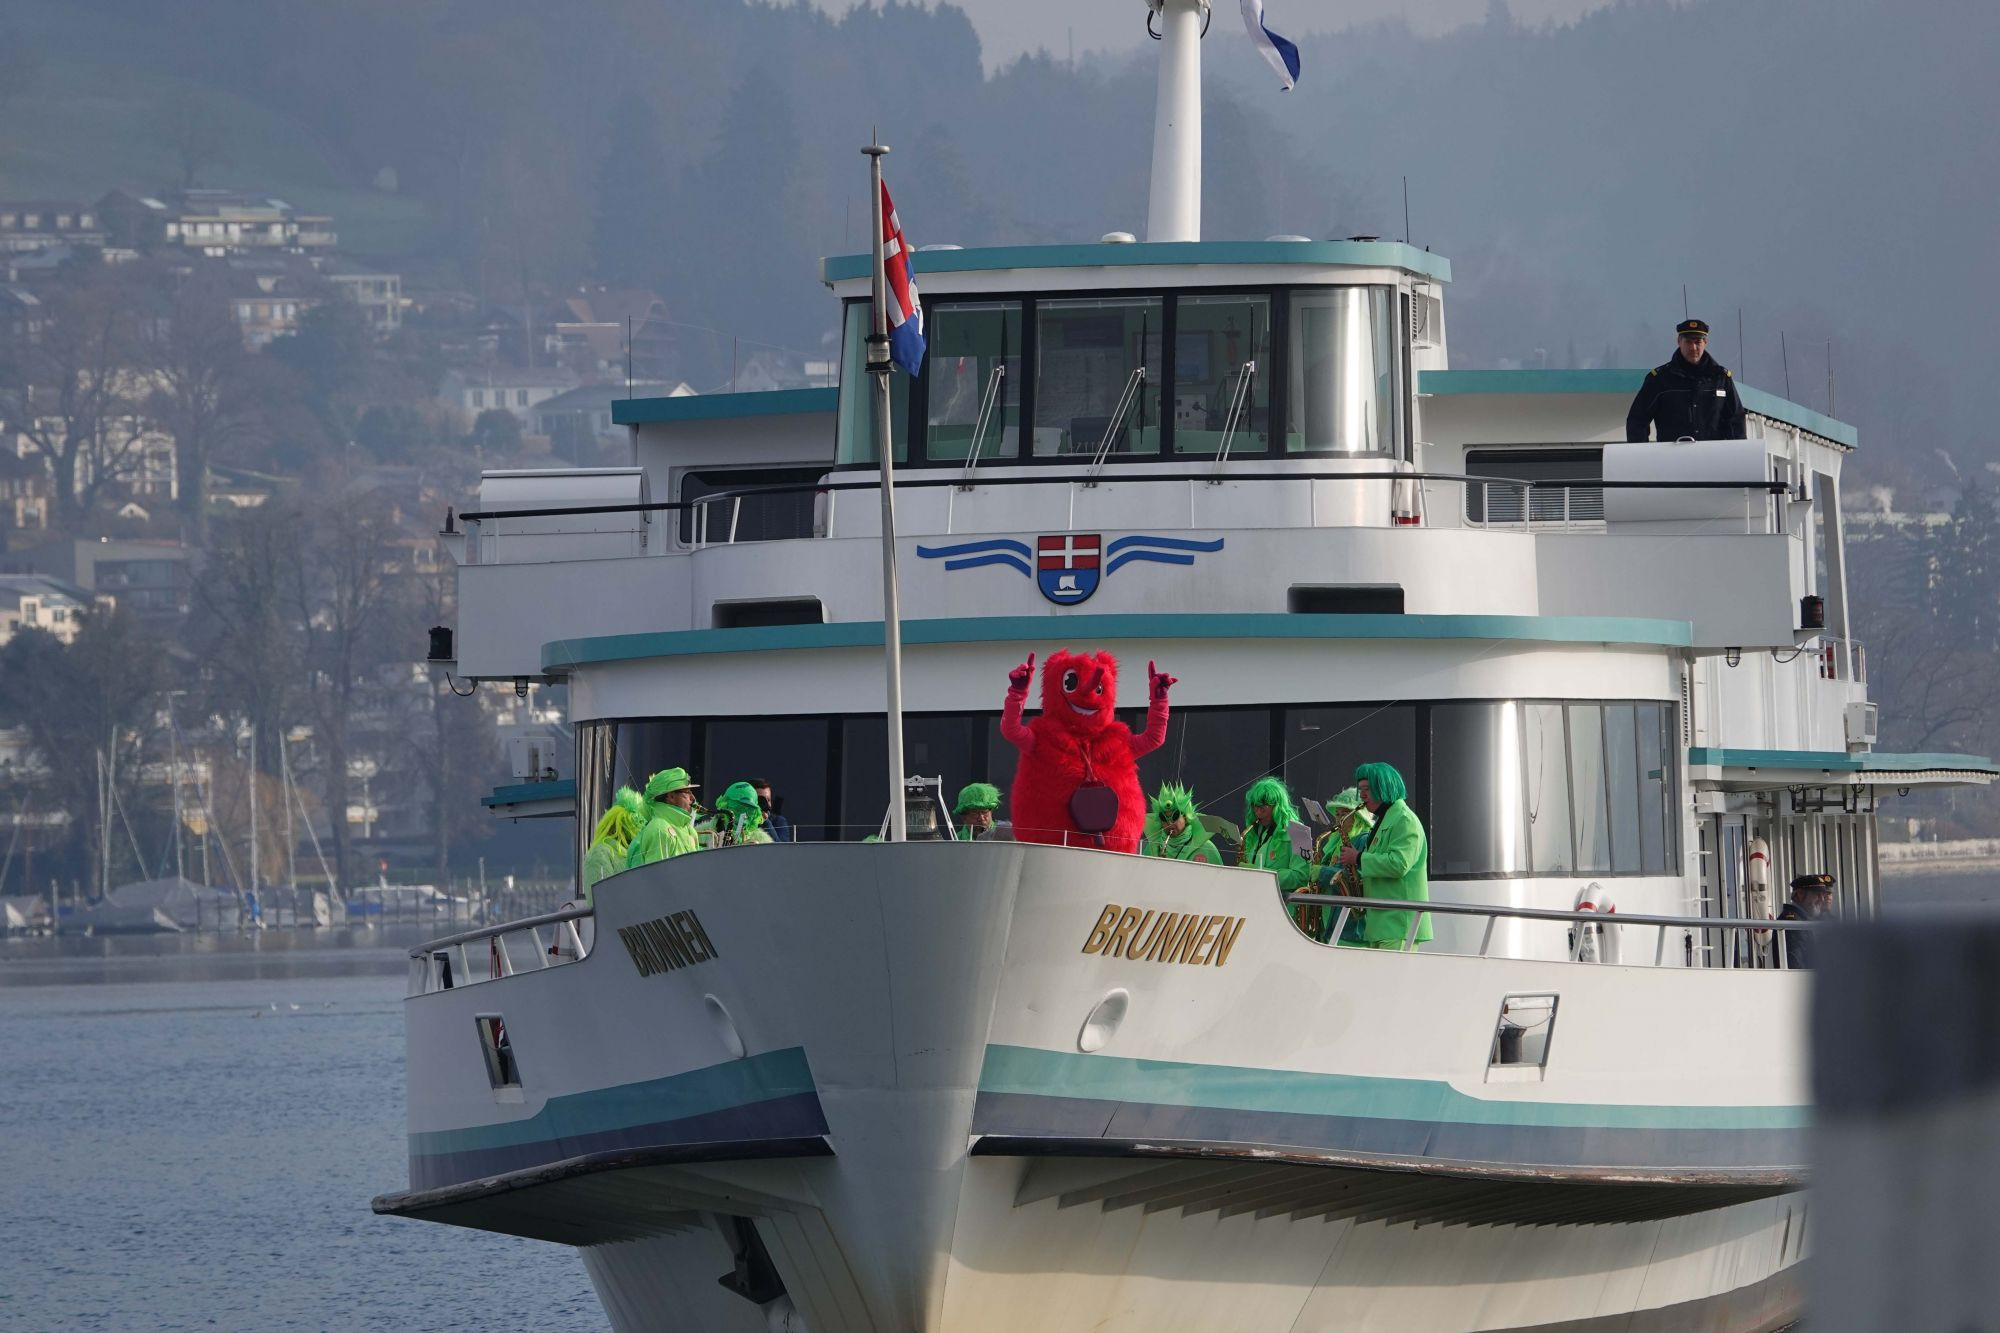 The mascot was revealed to mark one year to go until Lucerne 2021 ©Lucerne 2021